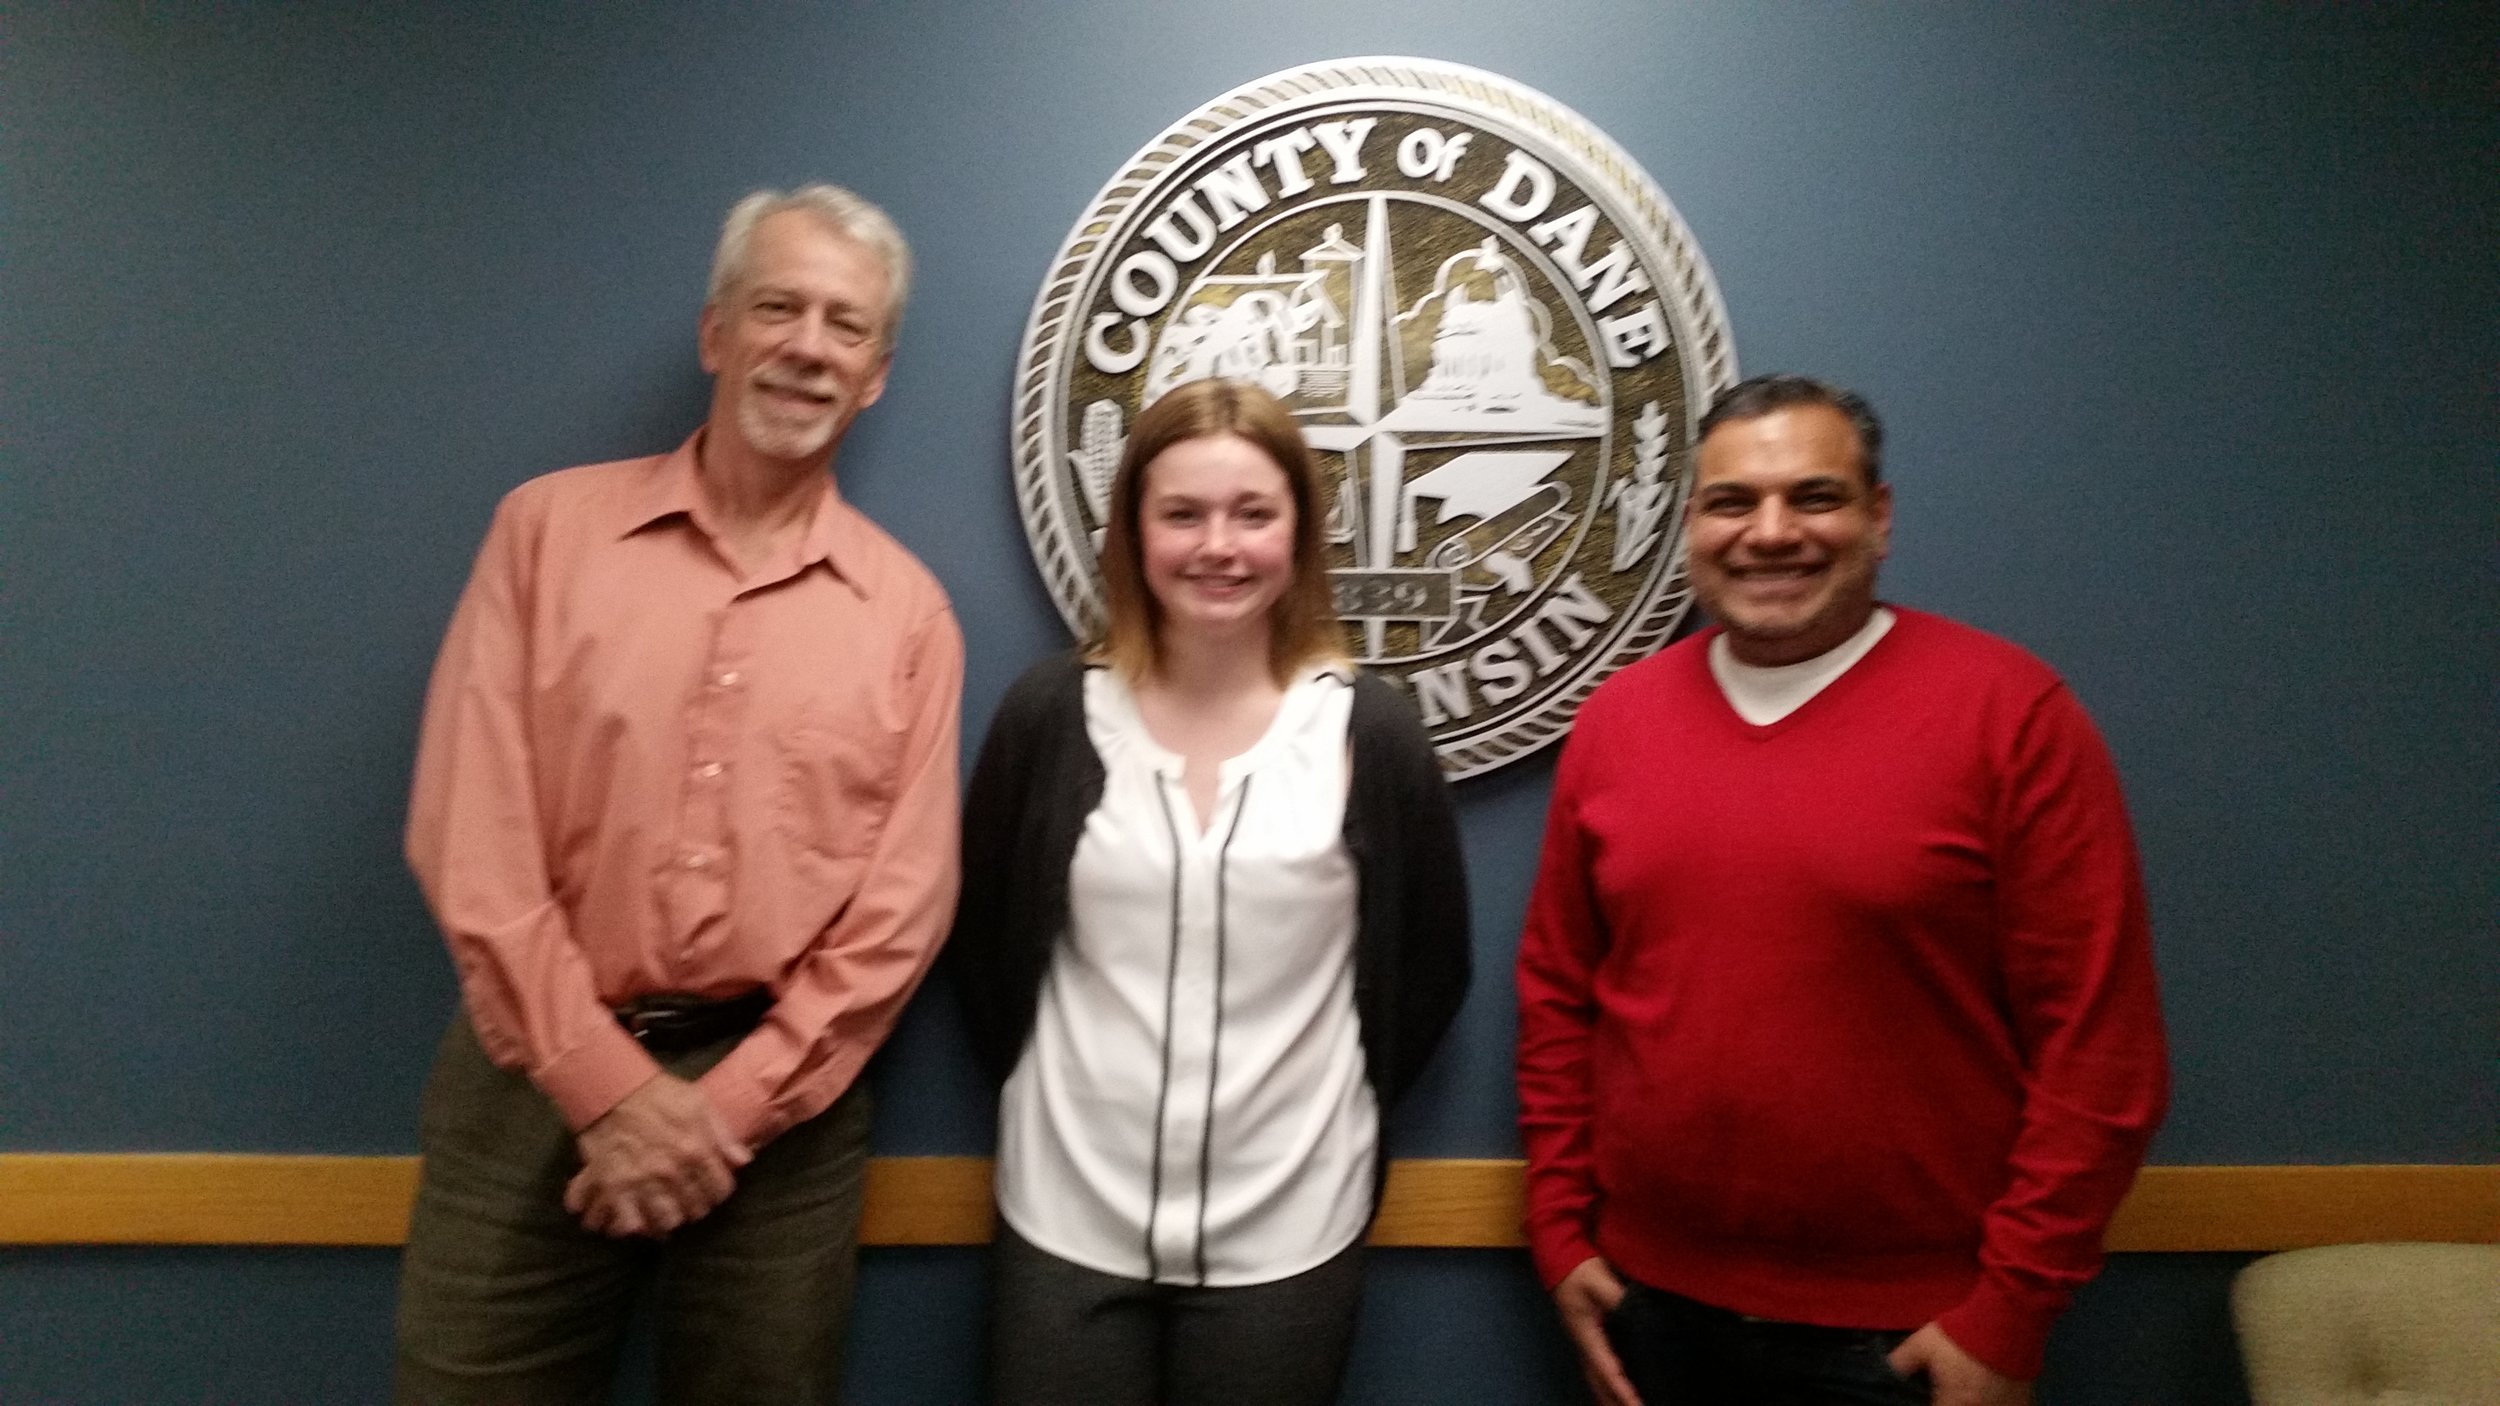 Keith, Lily and Yogesh snap a photo in front of the County Seal after a productive meeting.